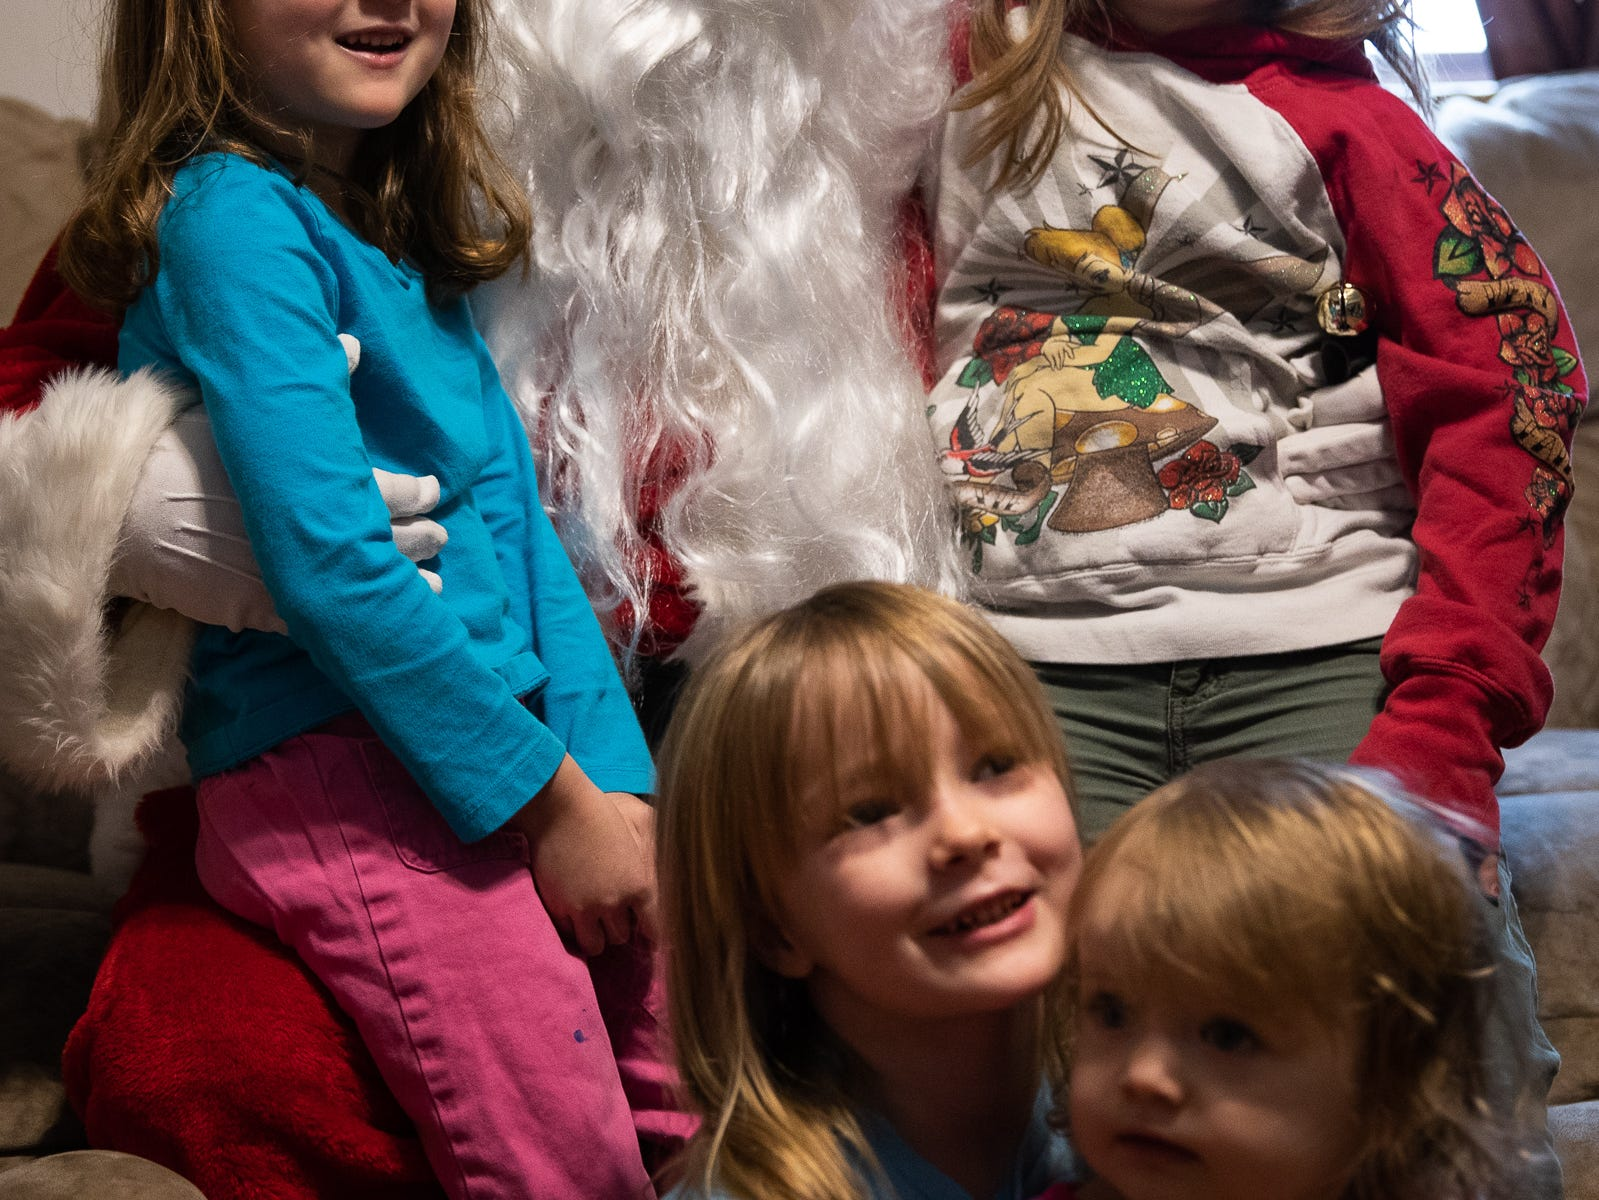 Mia, 4, back left, Sierra, 7, back right, Laila, 6, front left, and Arianna, 2, front right, pose for a photo with Santa, played by firefighter Wayne Reid, during the S.A.V.E.S Project Santa, Saturday, Dec. 22, 2018, in McSherrystown Borough. The S.A.V.E.S Project Santa donated food, toys, and clothing to 12 local families in need.